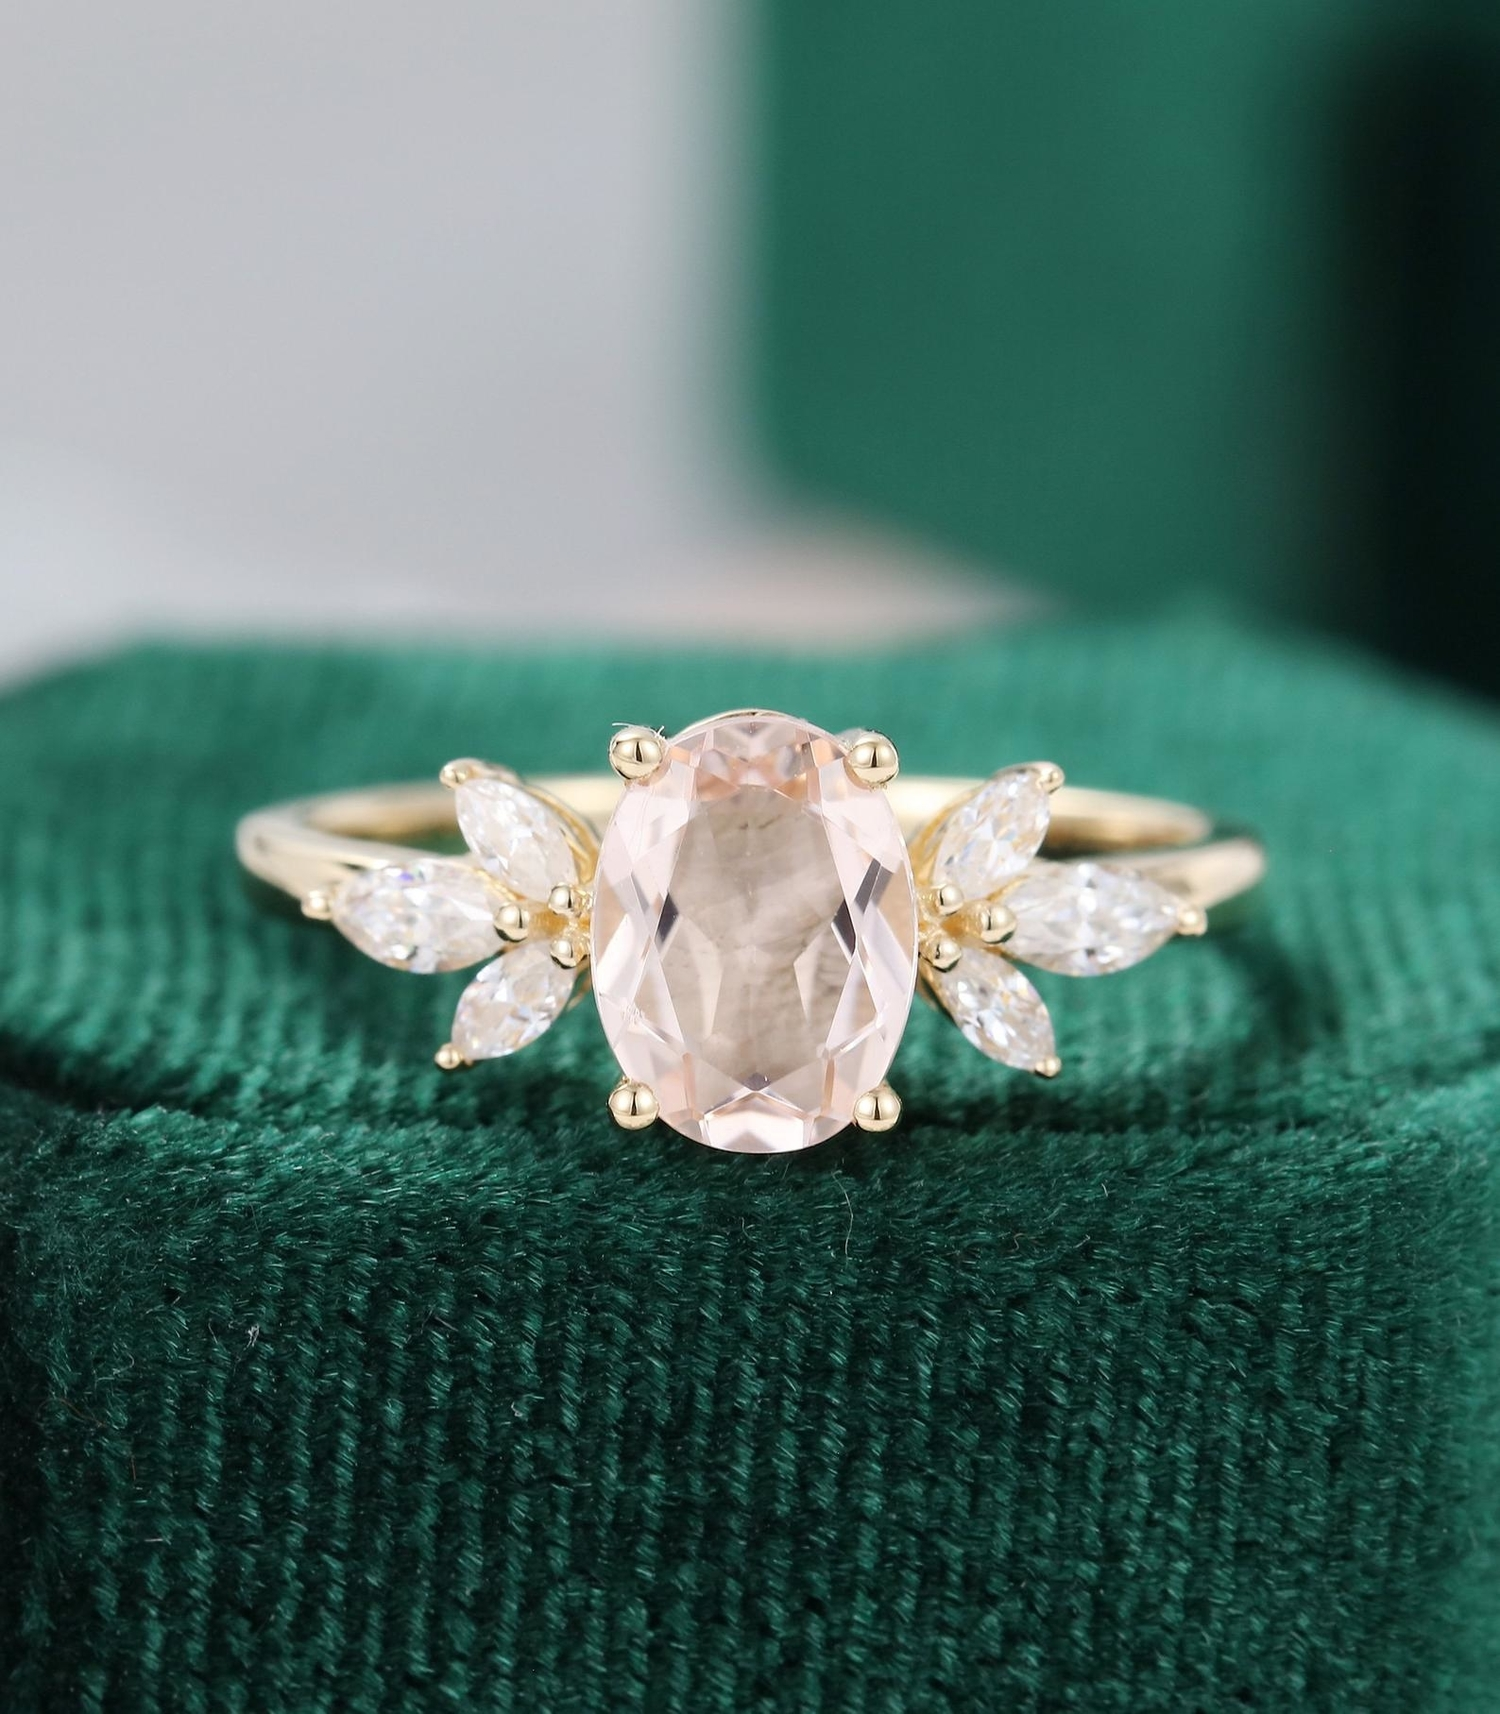 Oval Engagement Ring from Etsy